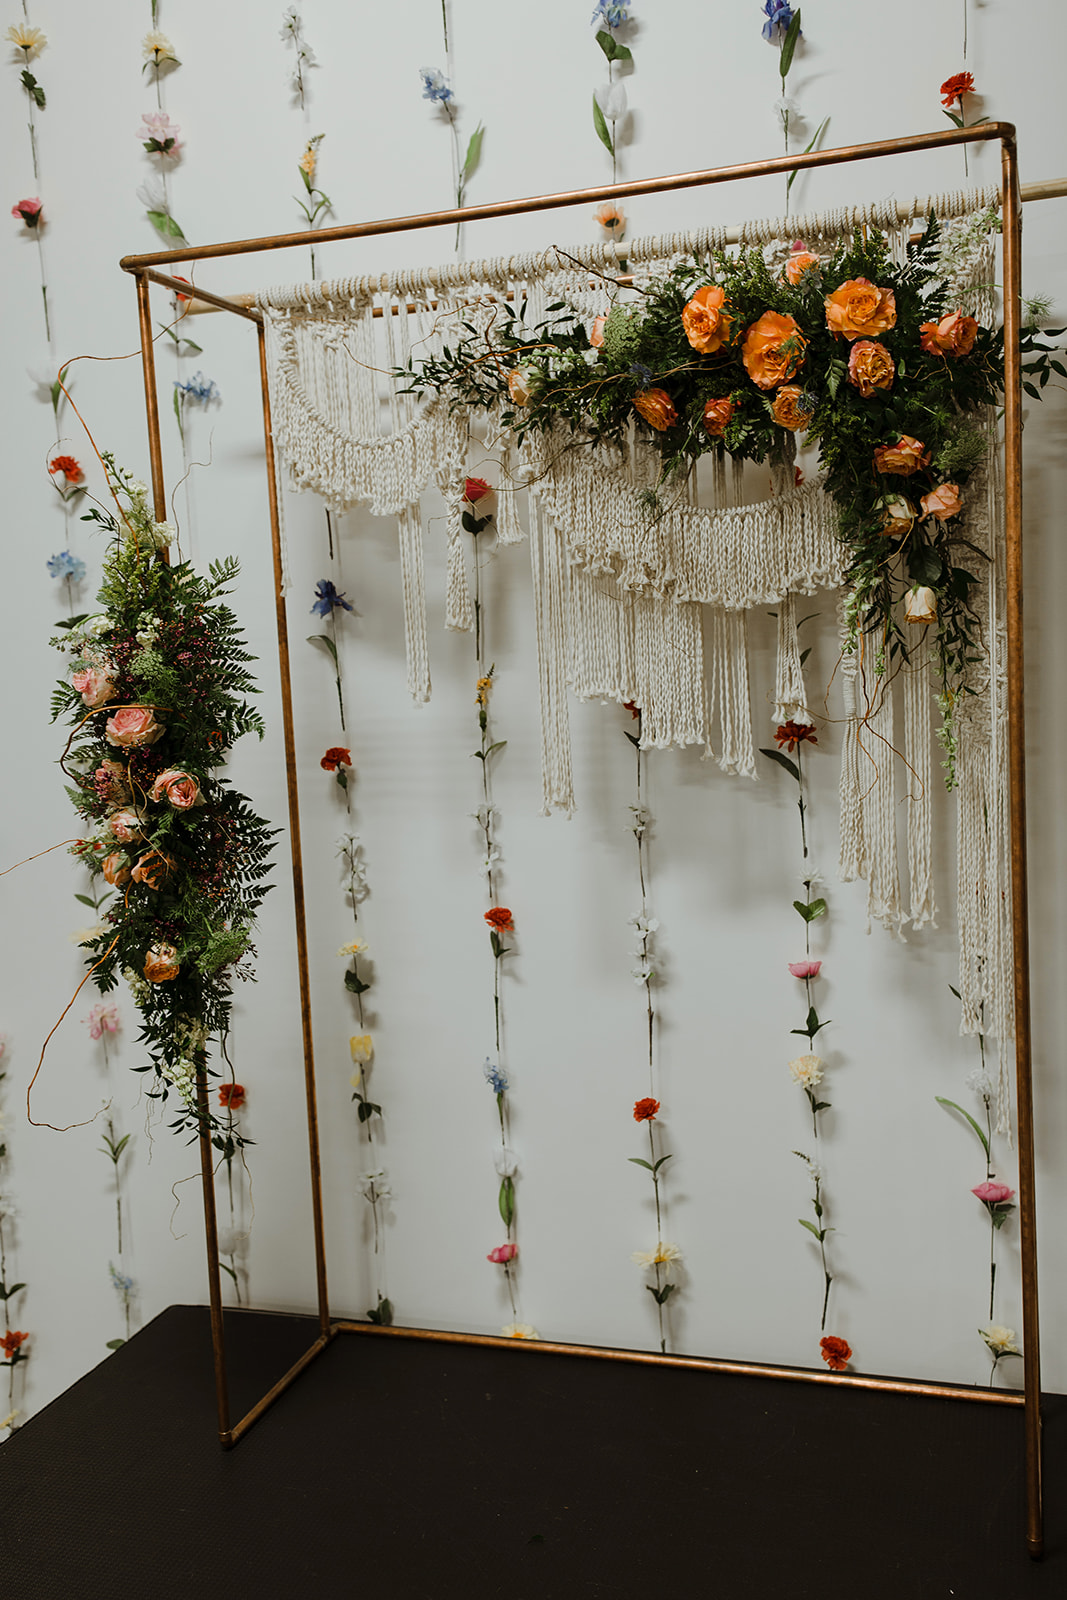 spokane wedding dress macrame fresh flowers copper archway